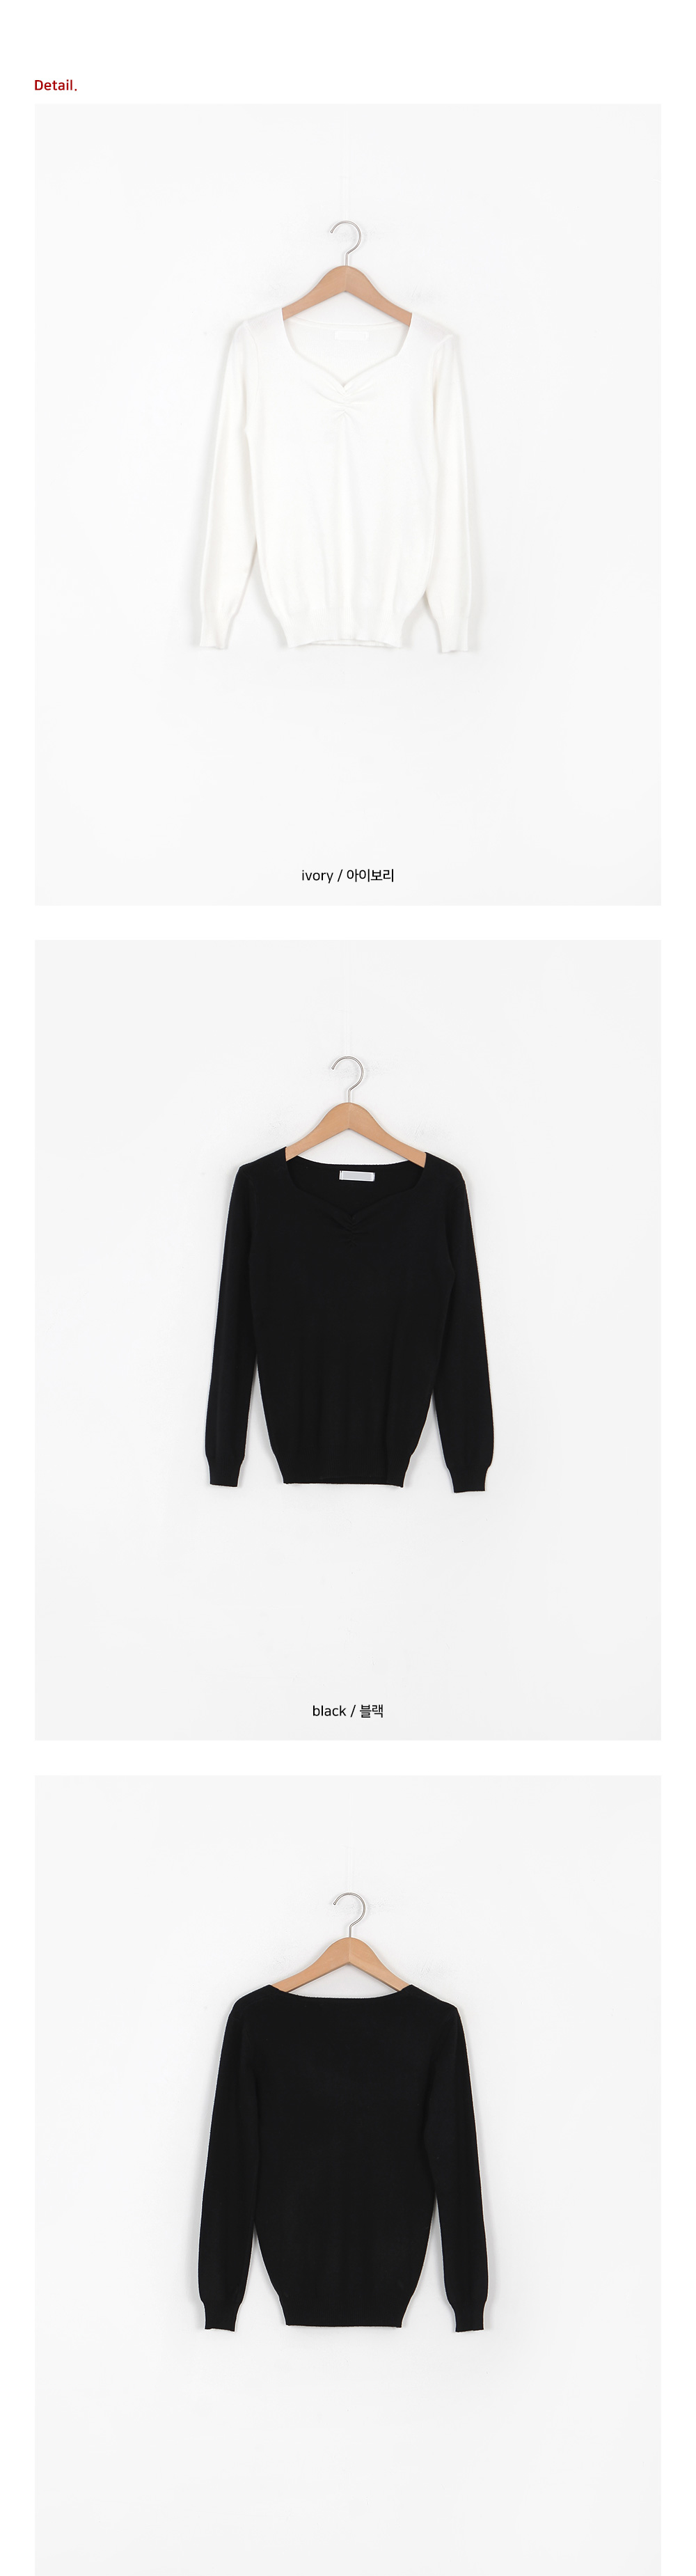 Heads Front shearing knit